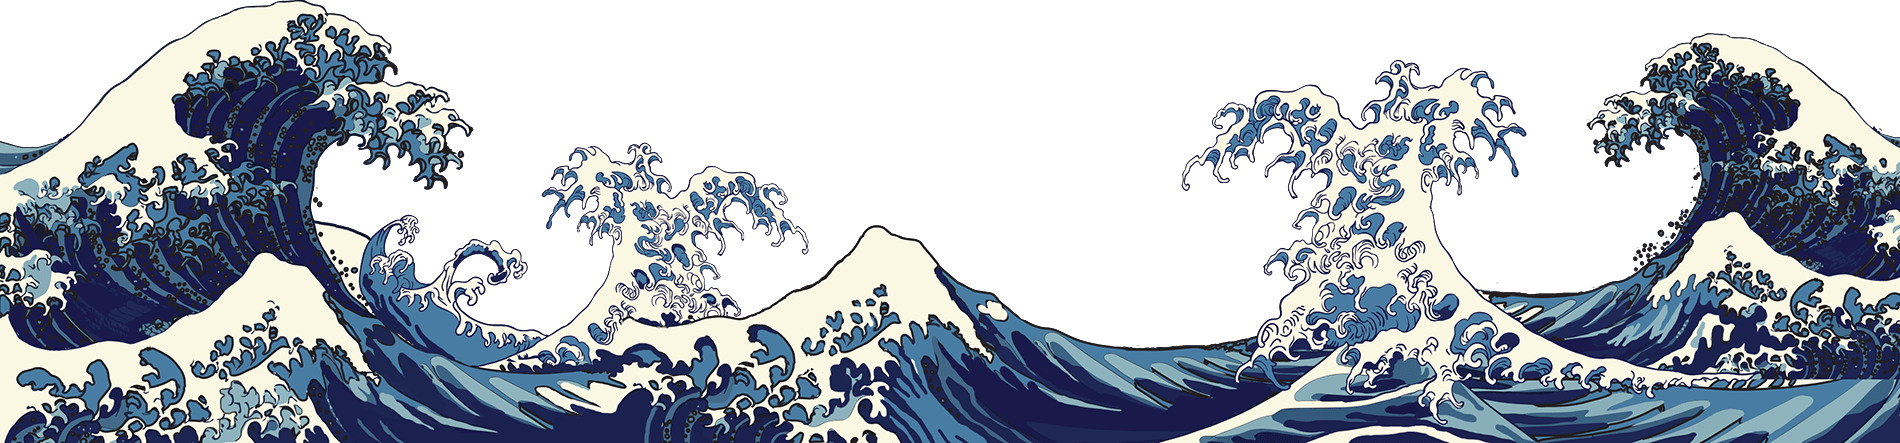 japanese_waves_full